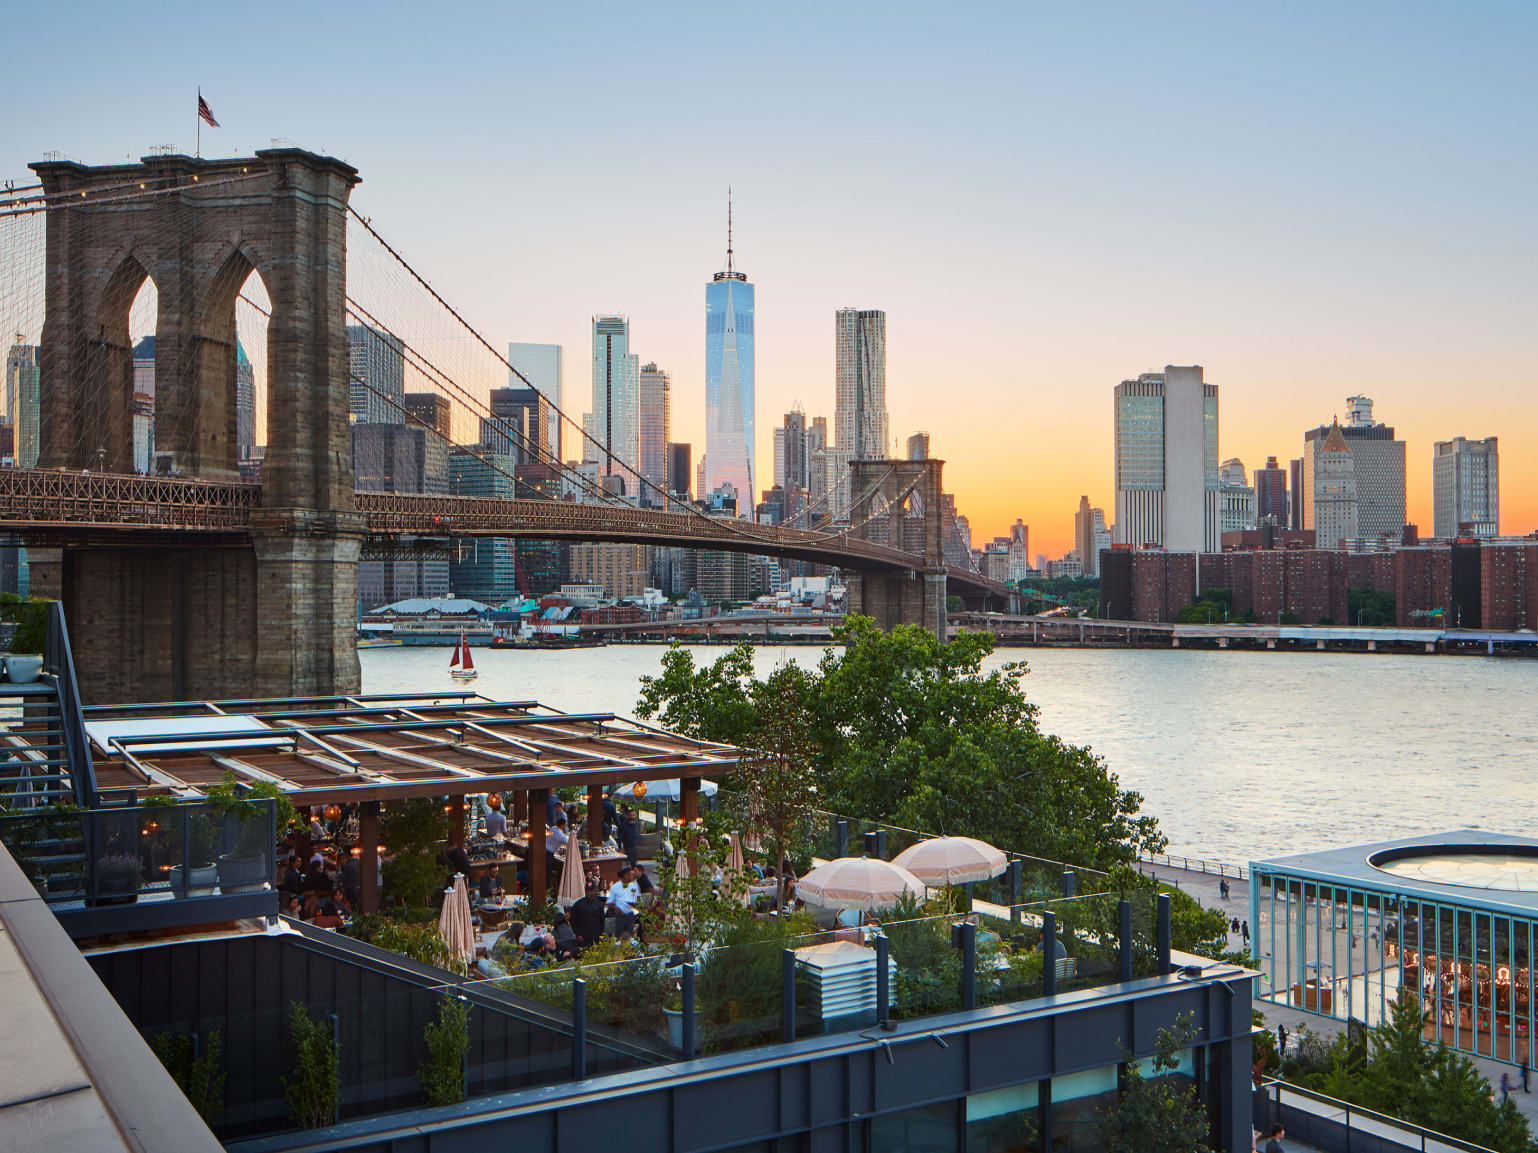 A terrace overlooking the East River, Brooklyn Bridge and the towers of Manhattan.